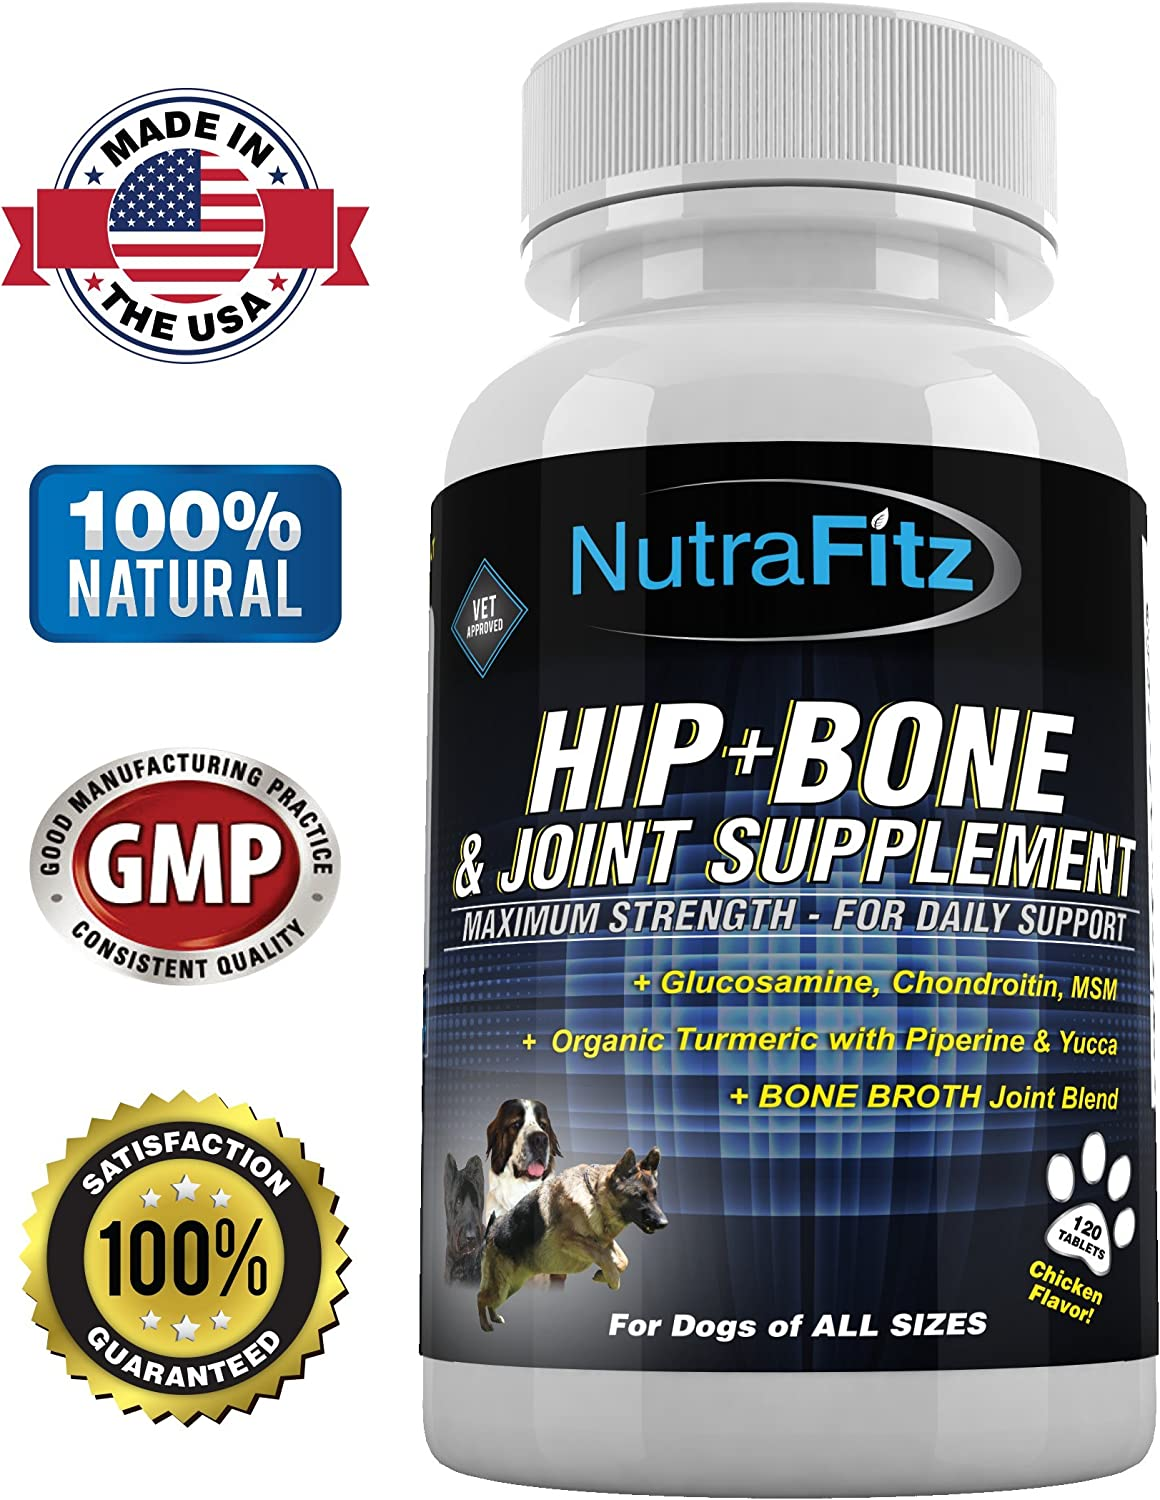 Nutrafitz Hip, Bone and Joint Supplement